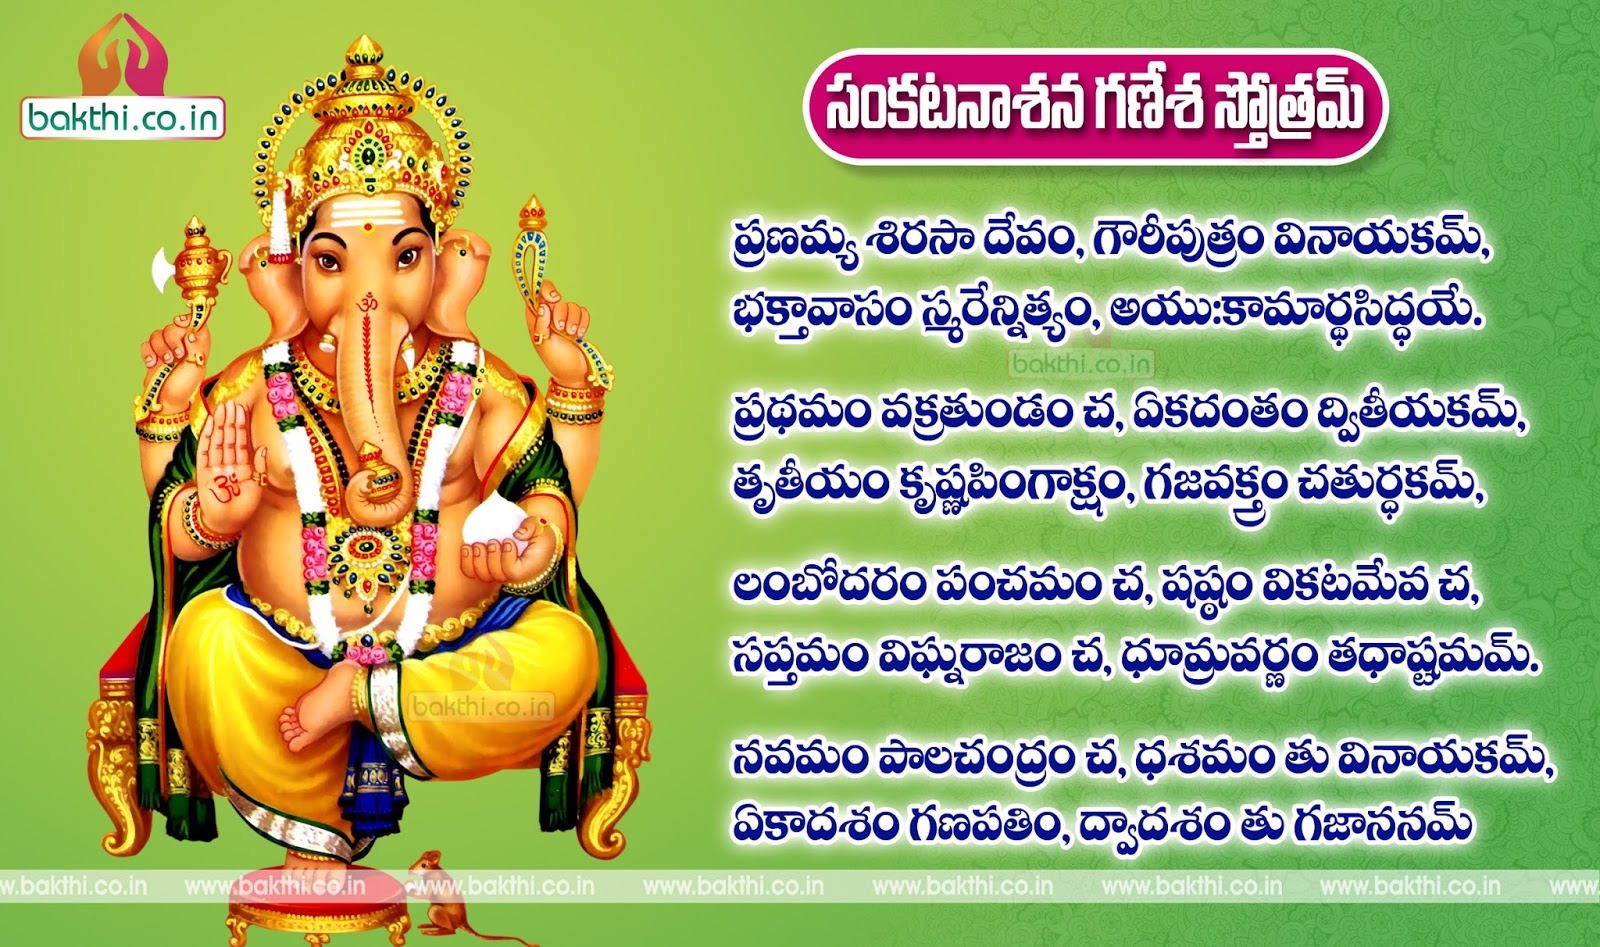 Sankata nashana ganesha stotram telugu mp3 download.